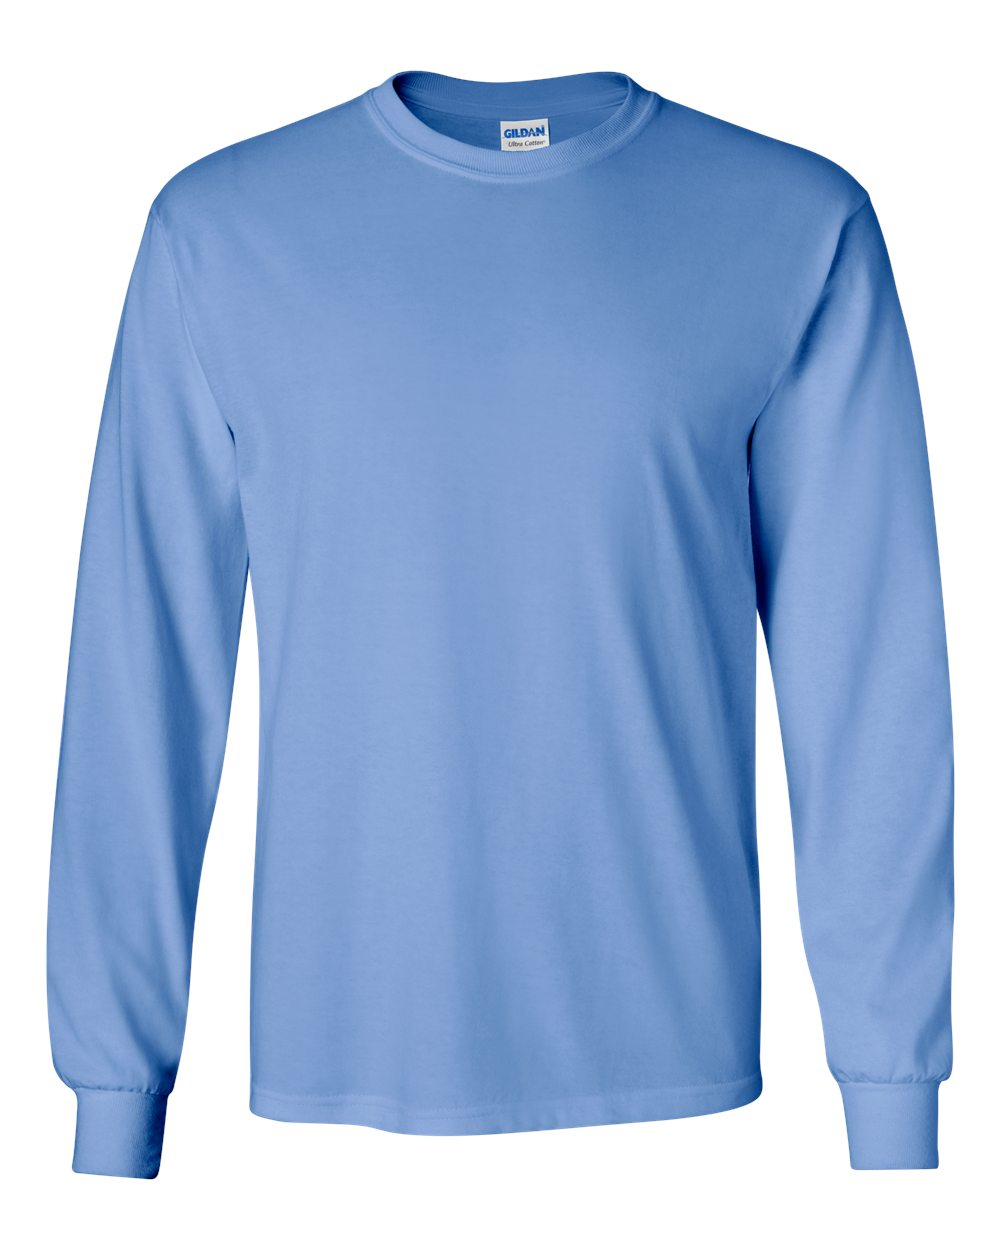 Gildan_2400_Carolina_Blue_Front_High.jpg